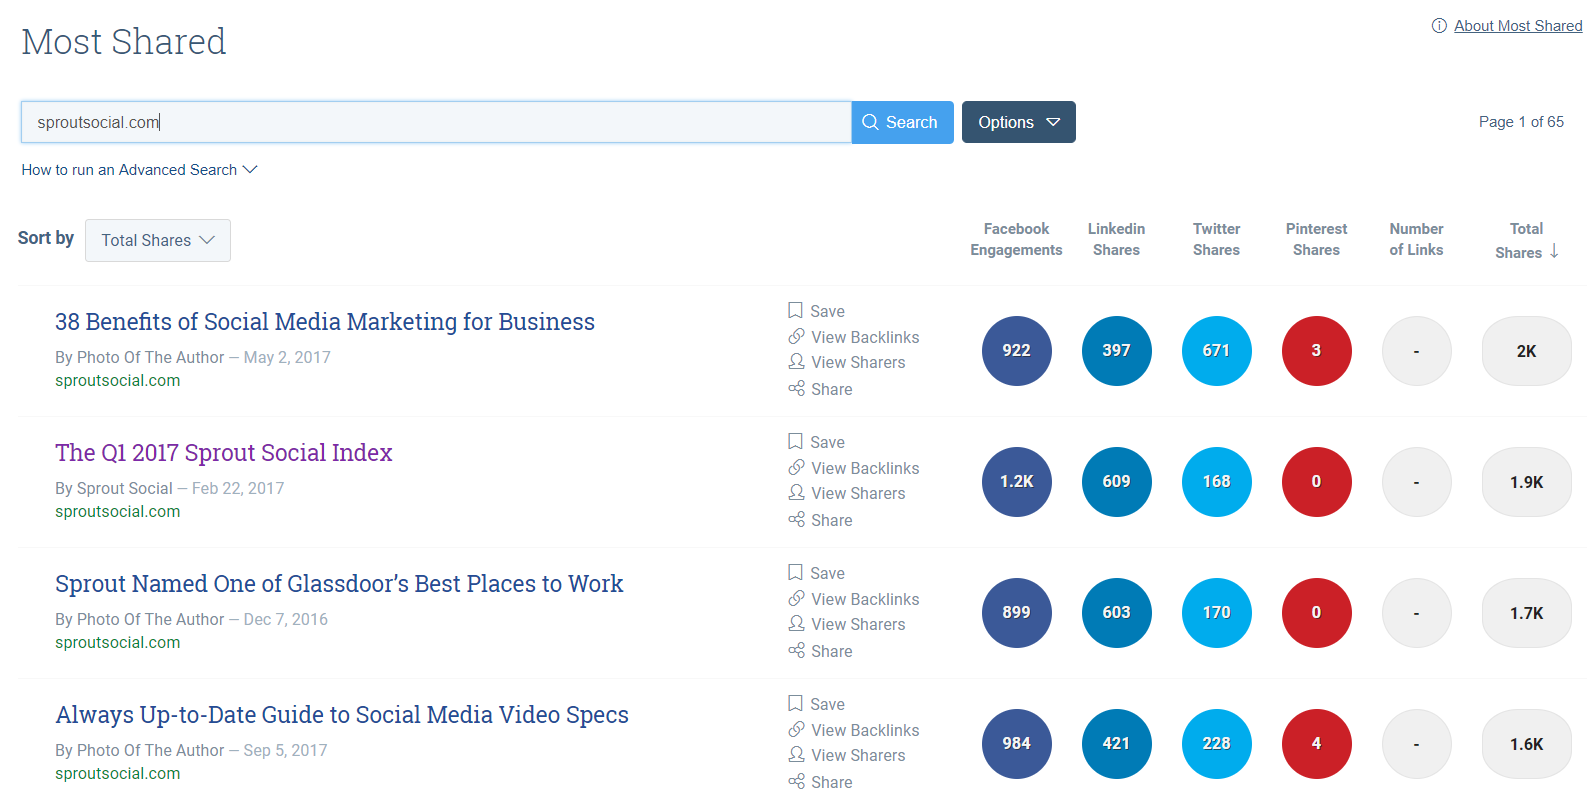 BuzzSumo is great for analyzing competing content